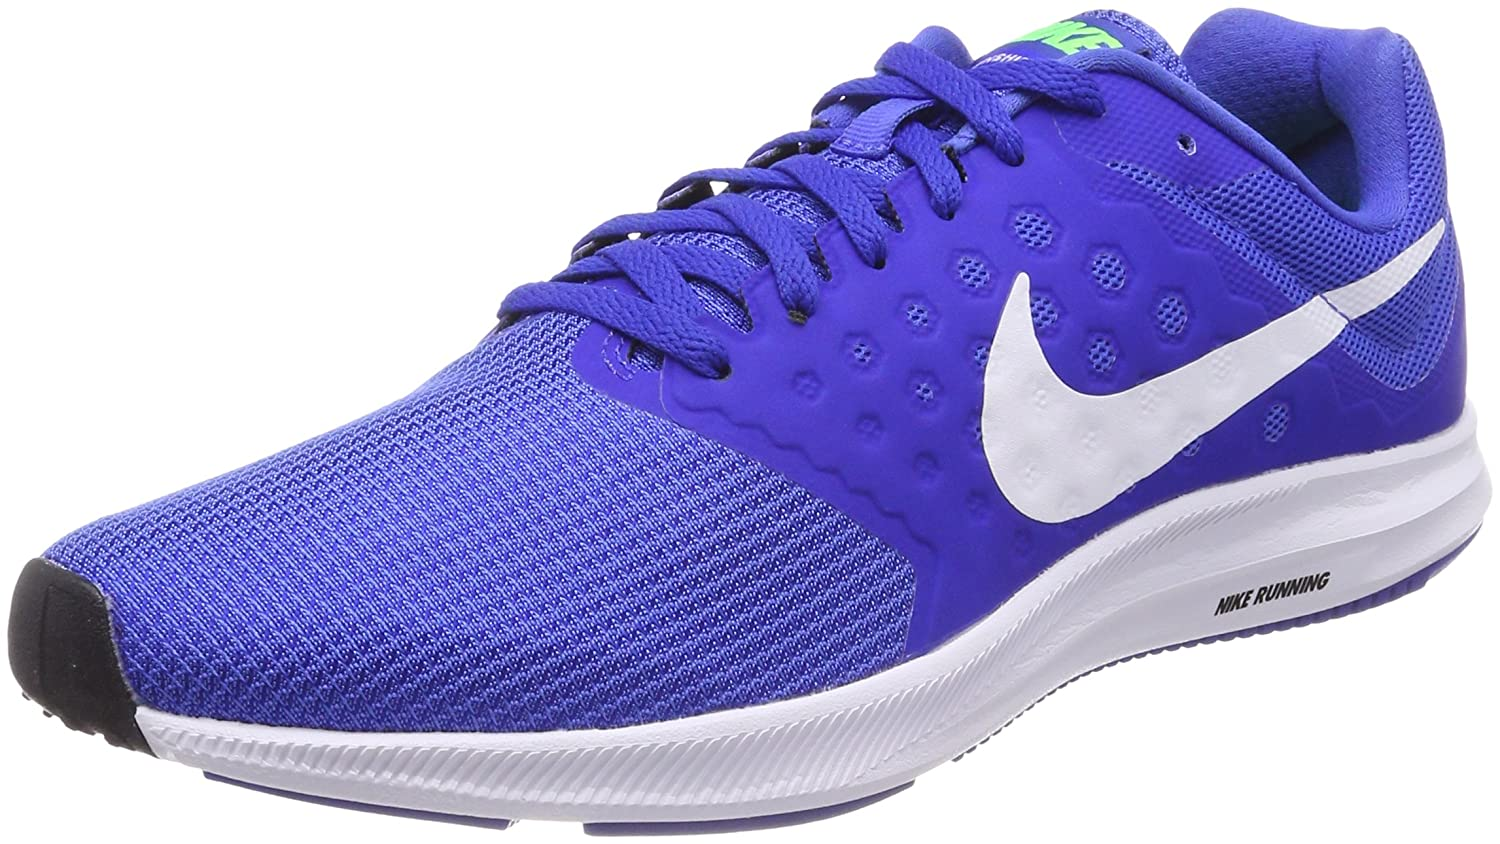 Nike Downshifter 7 Best Branded Running Shoes For Men in India 2019